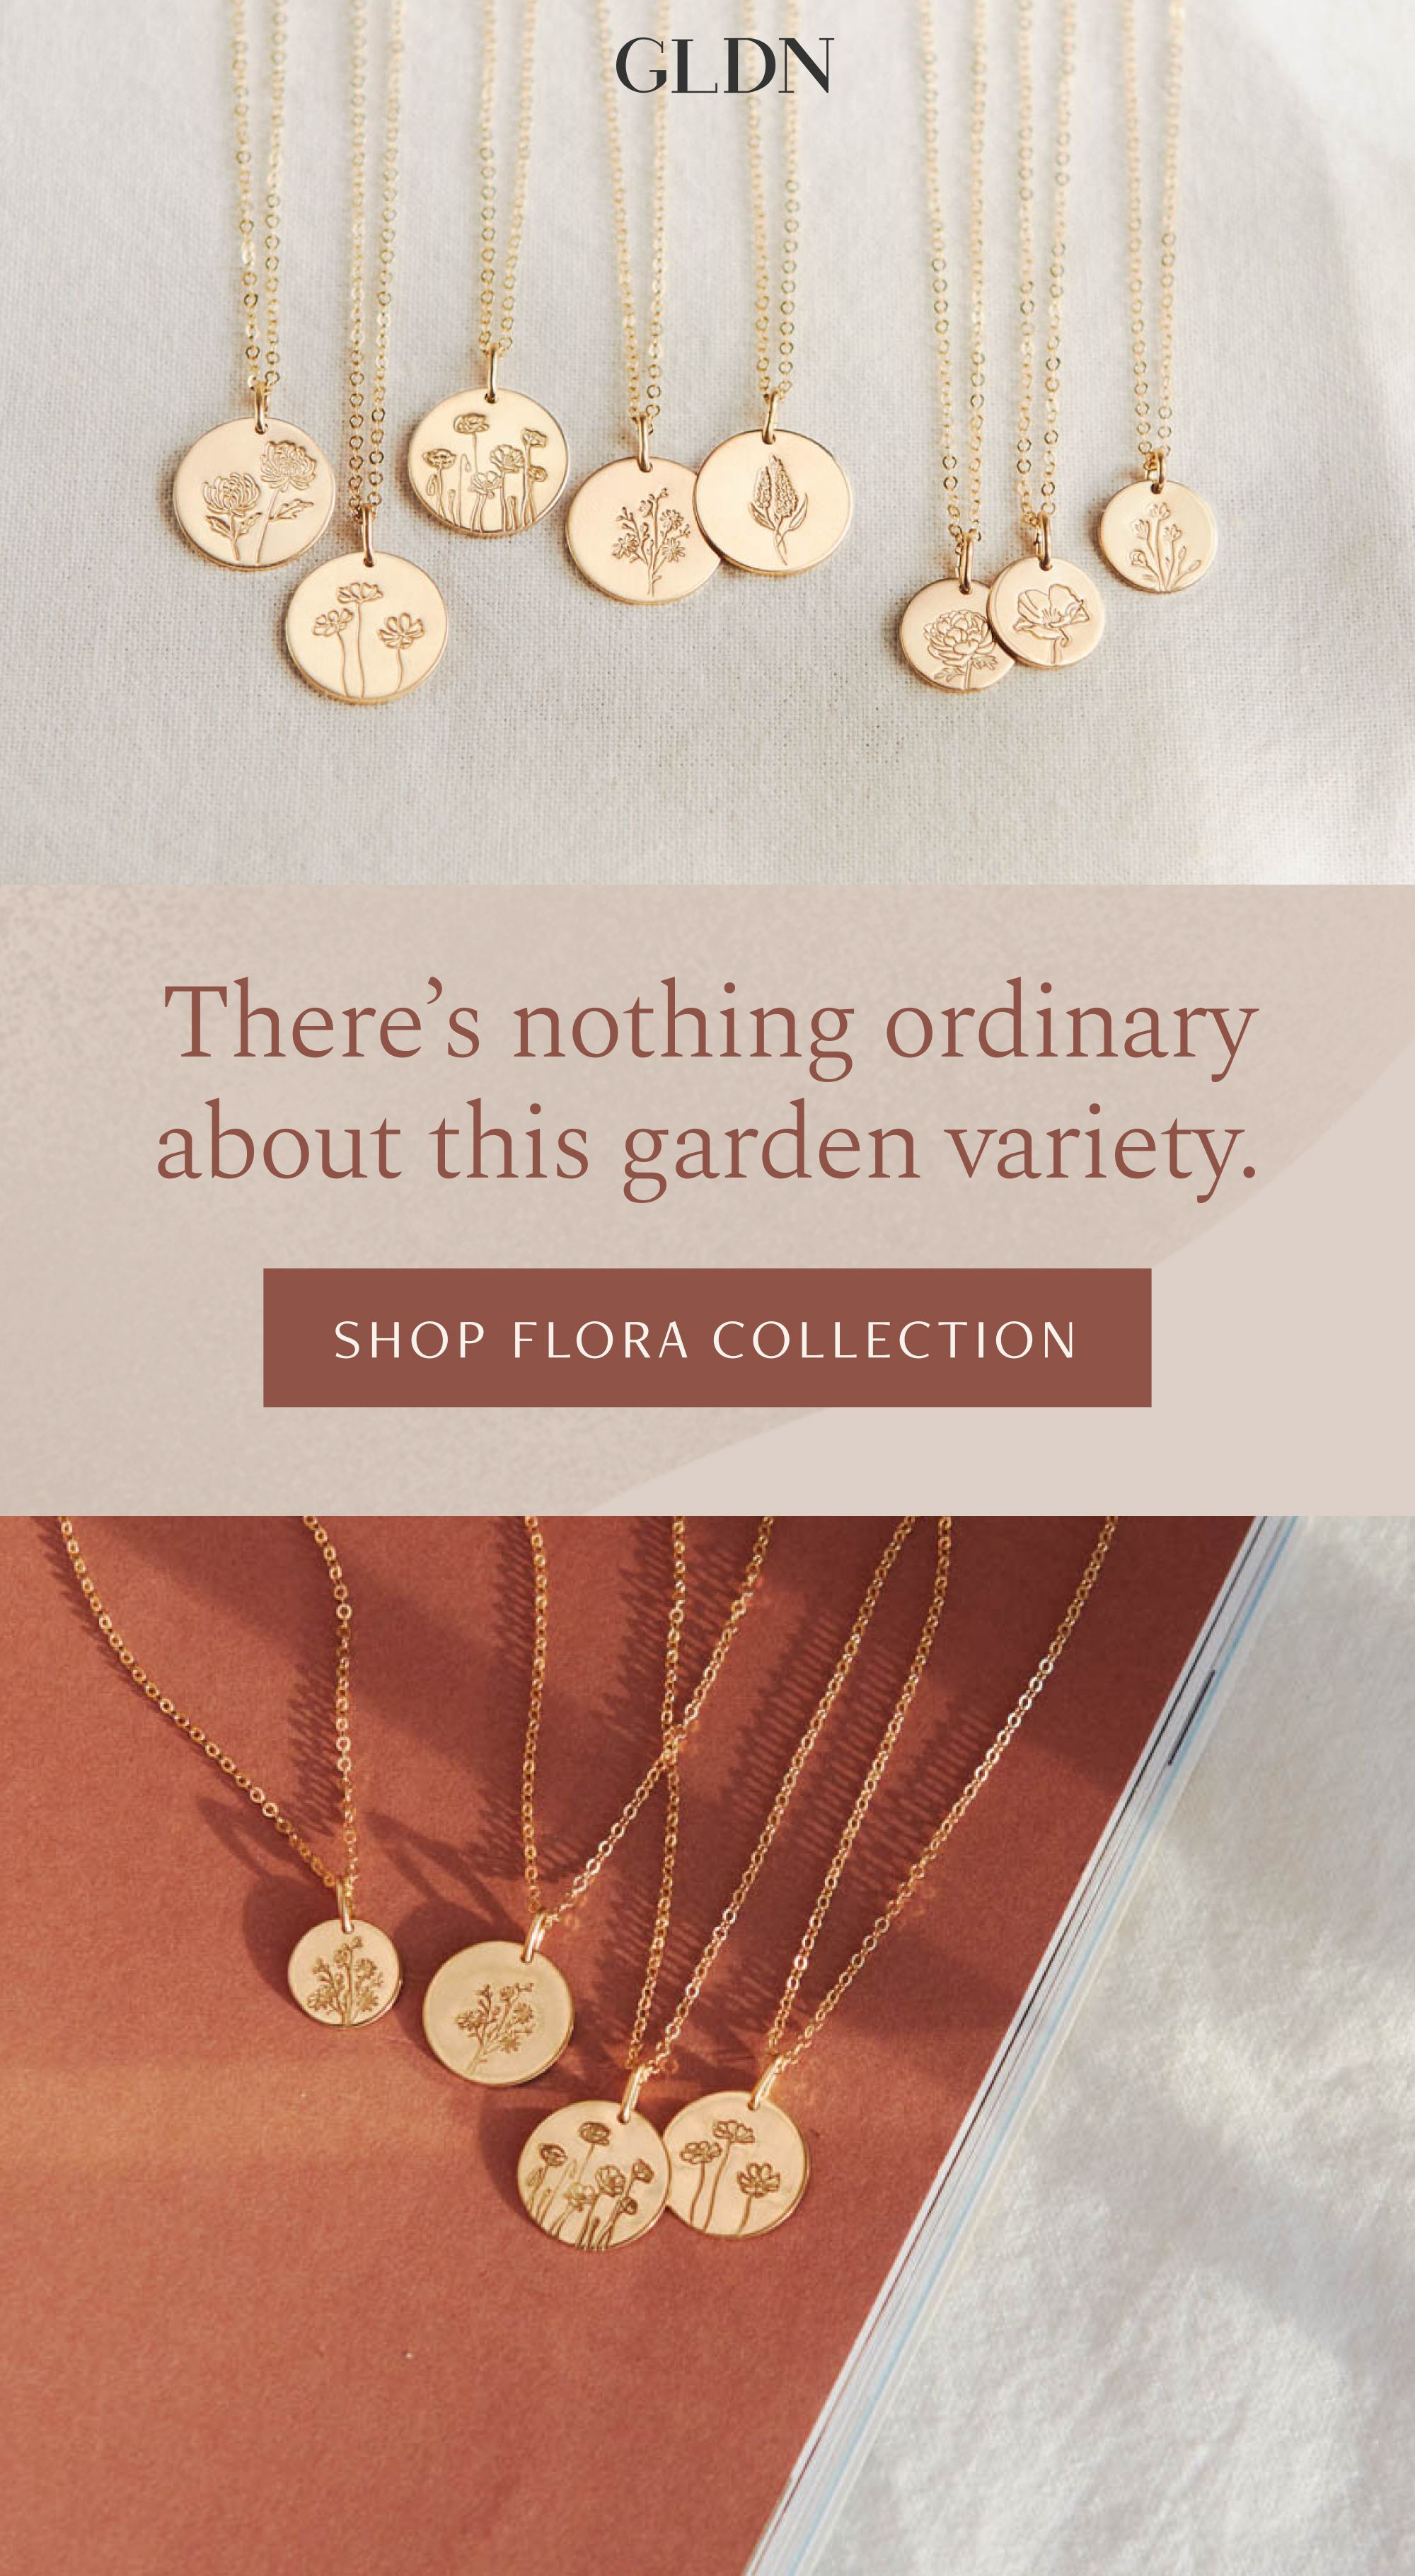 Explore The Flora Collection In 2020 Mens Accessories Necklace